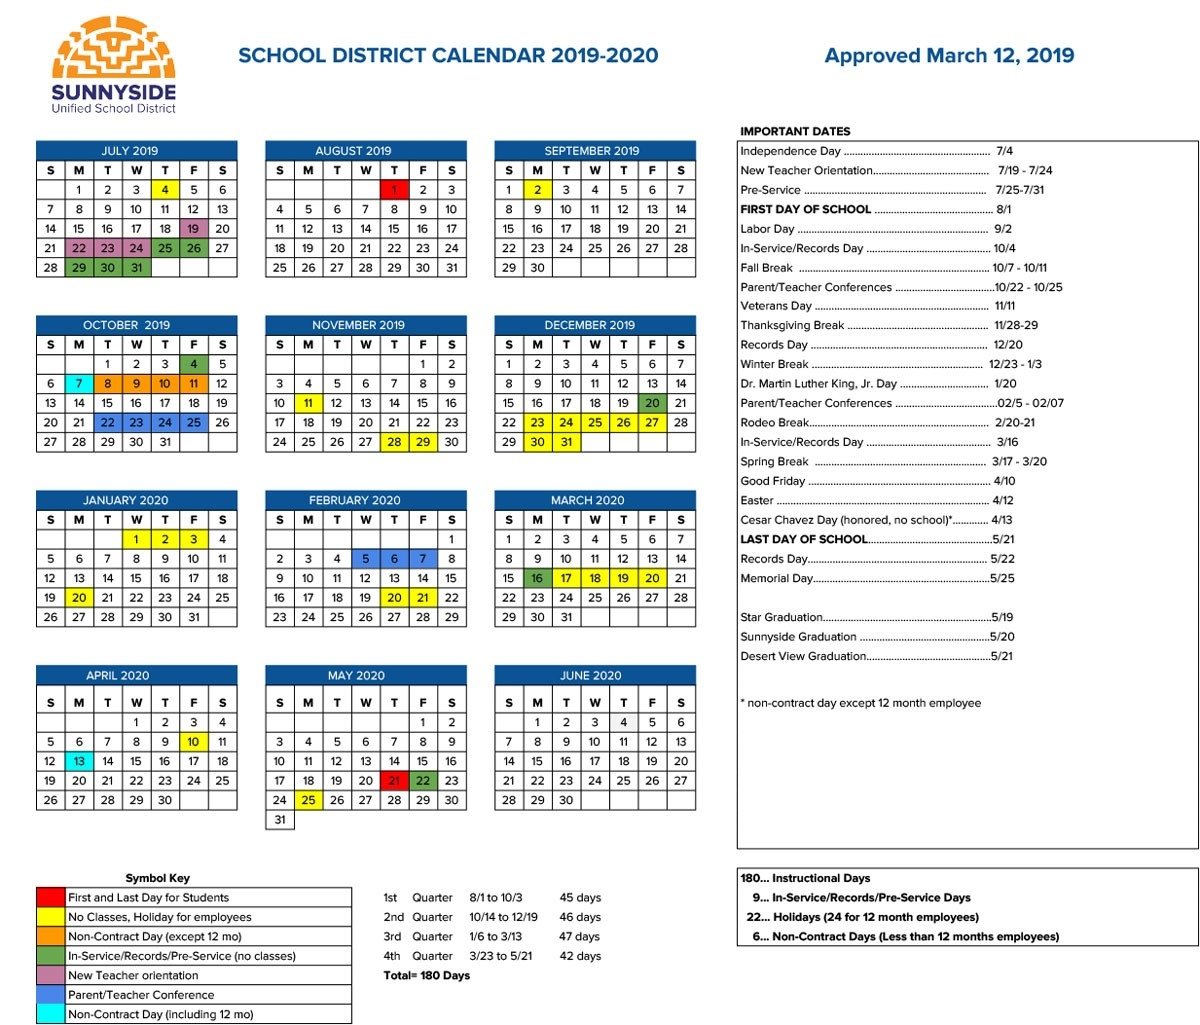 Academic Calendar | Sunnyside Unified School District-Key West Calendar January 2020